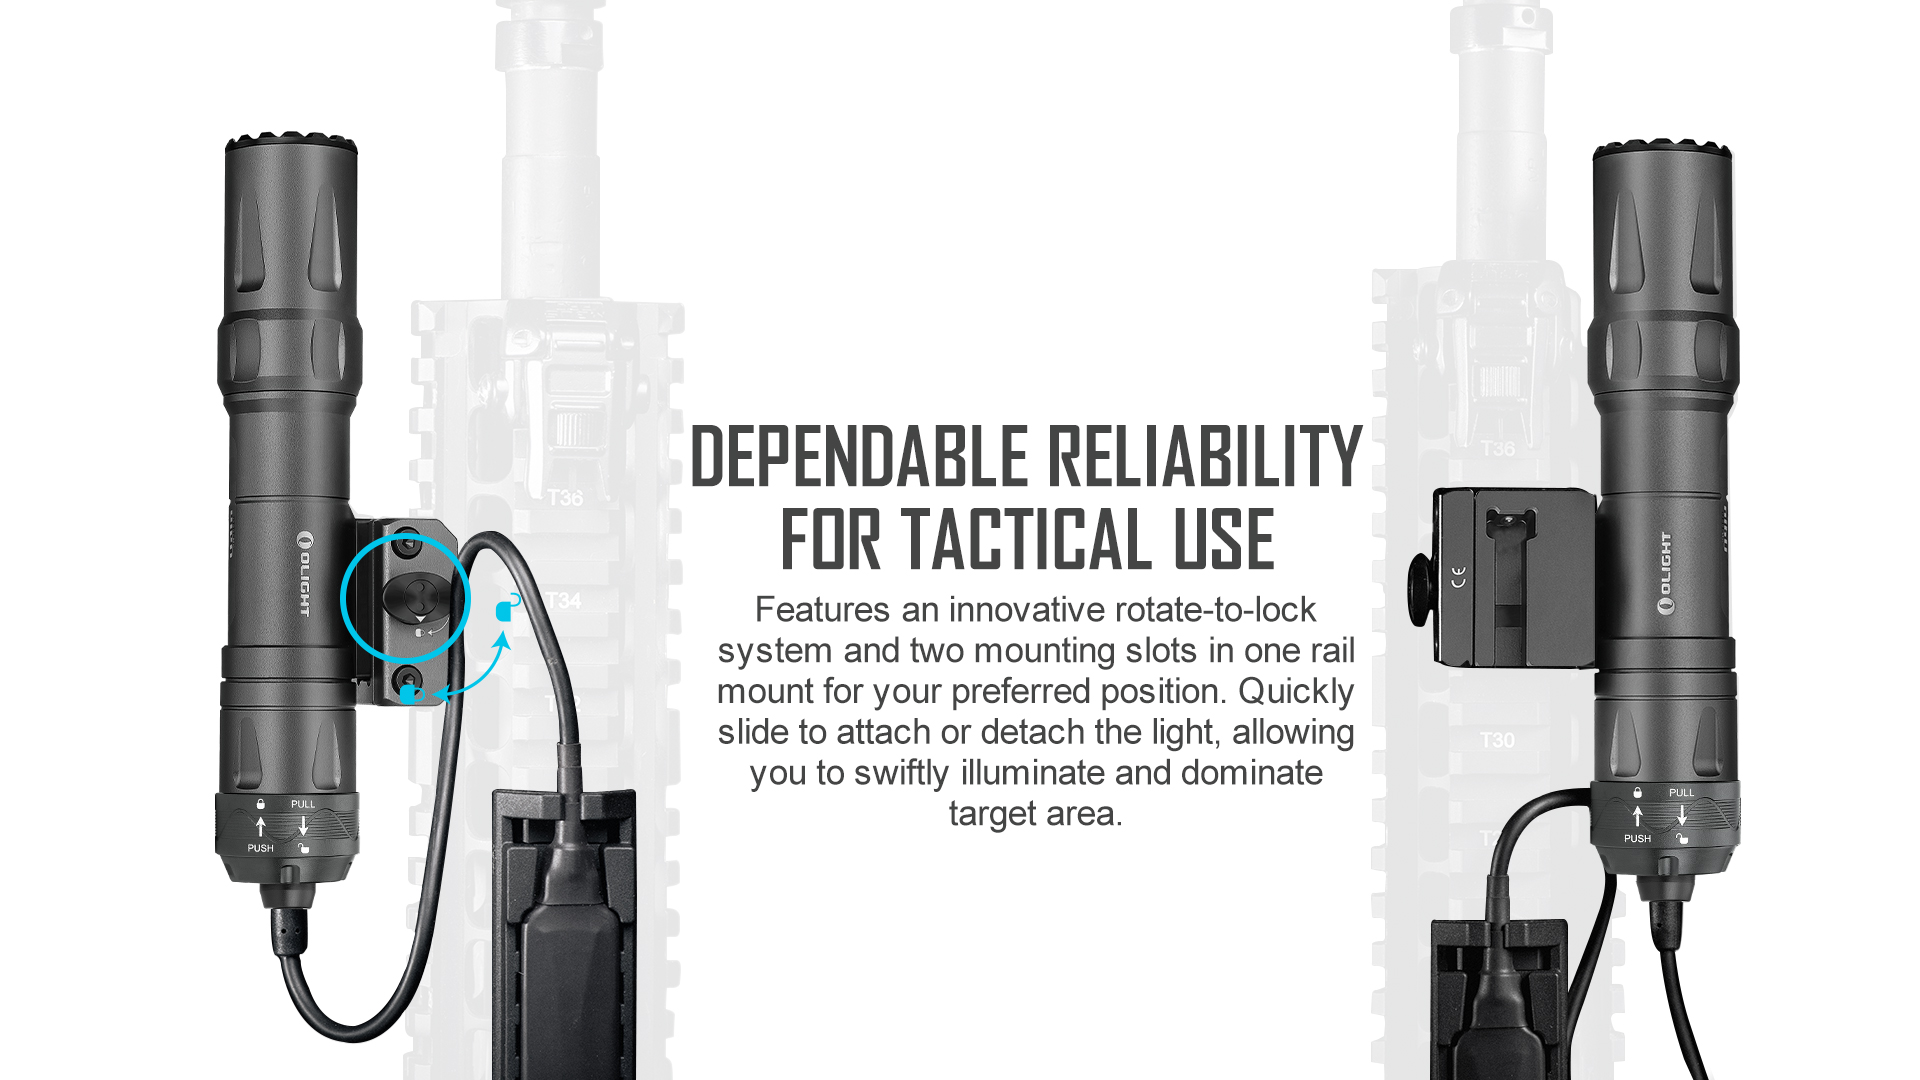 Tactical rail flashlight that can be installed quickly